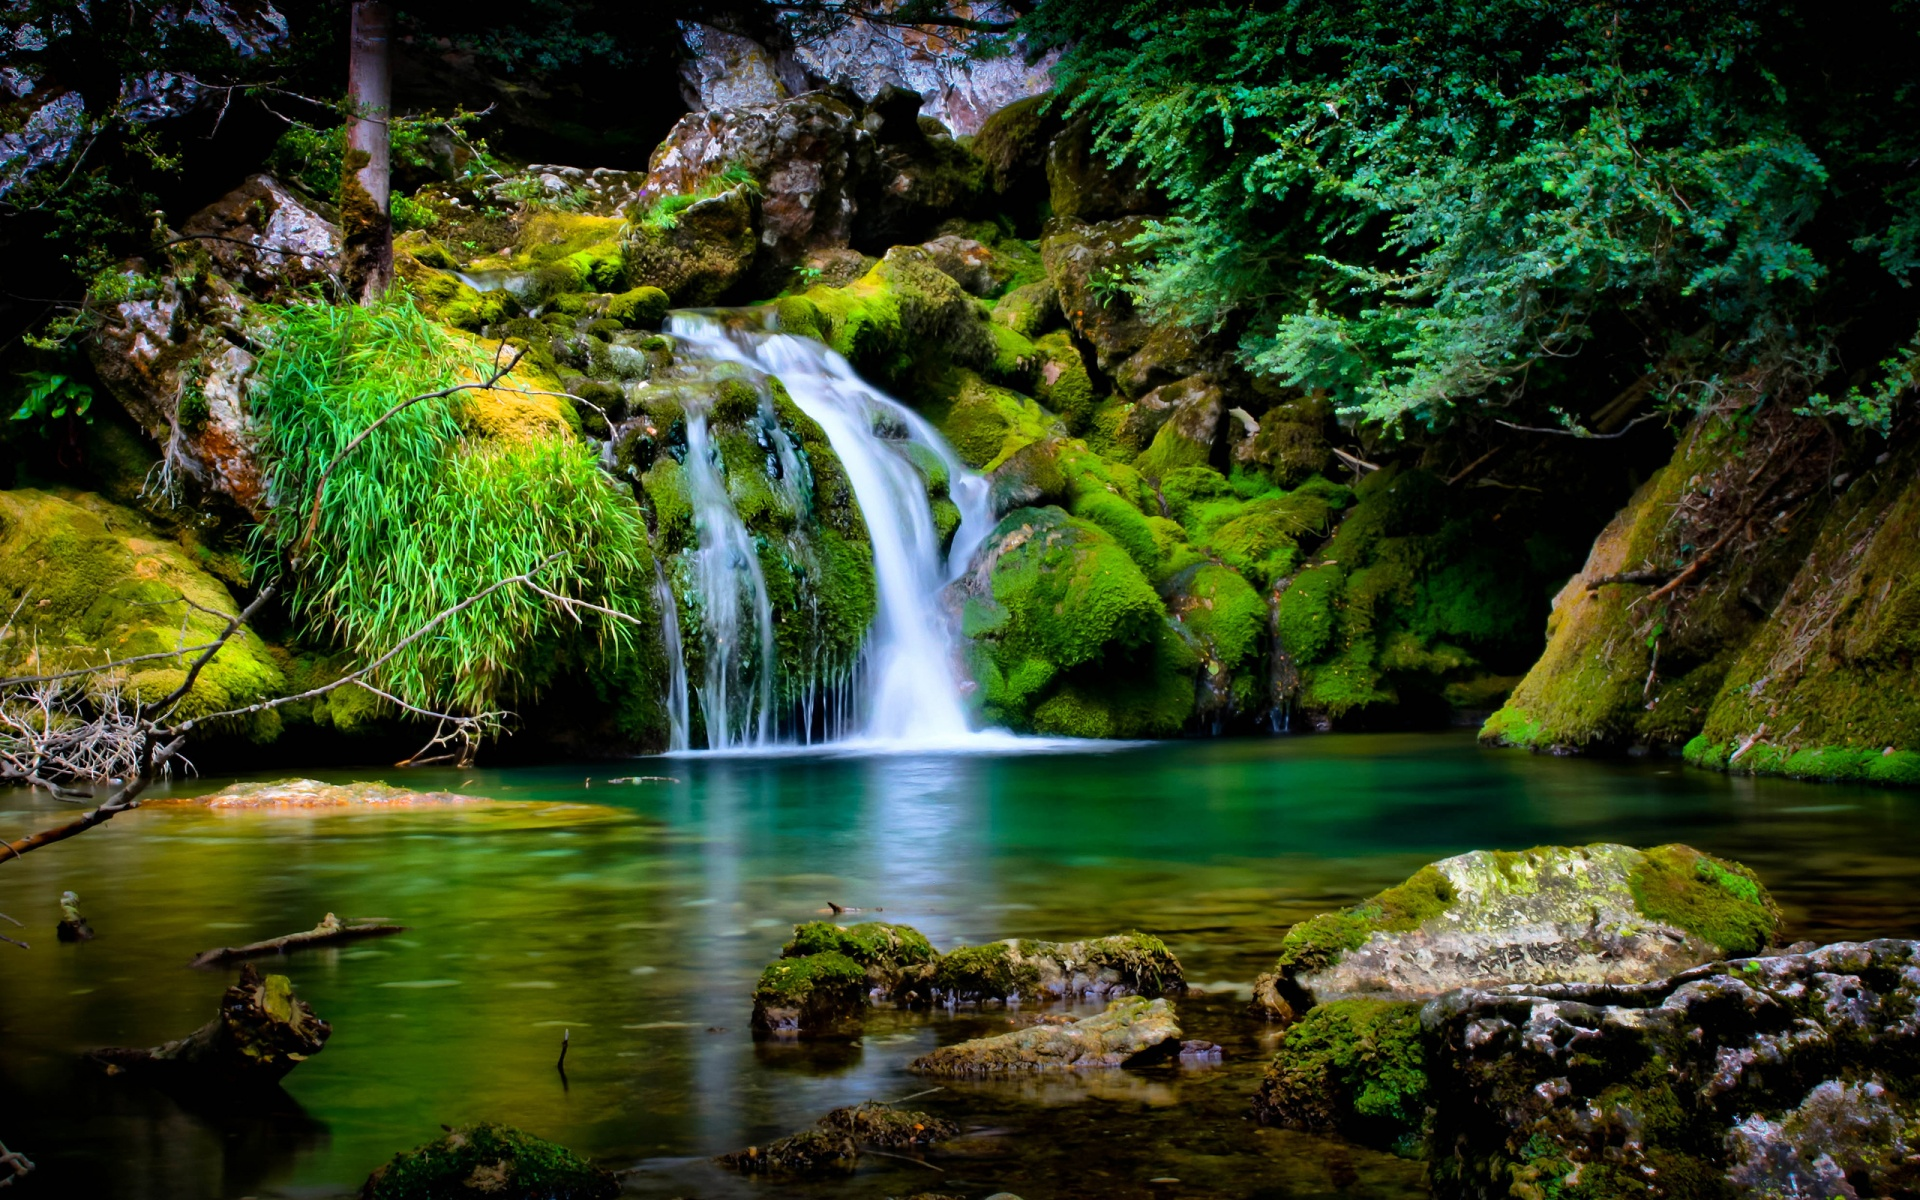 Computer Wallpaper | Waterfall-Wallpaper-desktop |HD Wallpapers